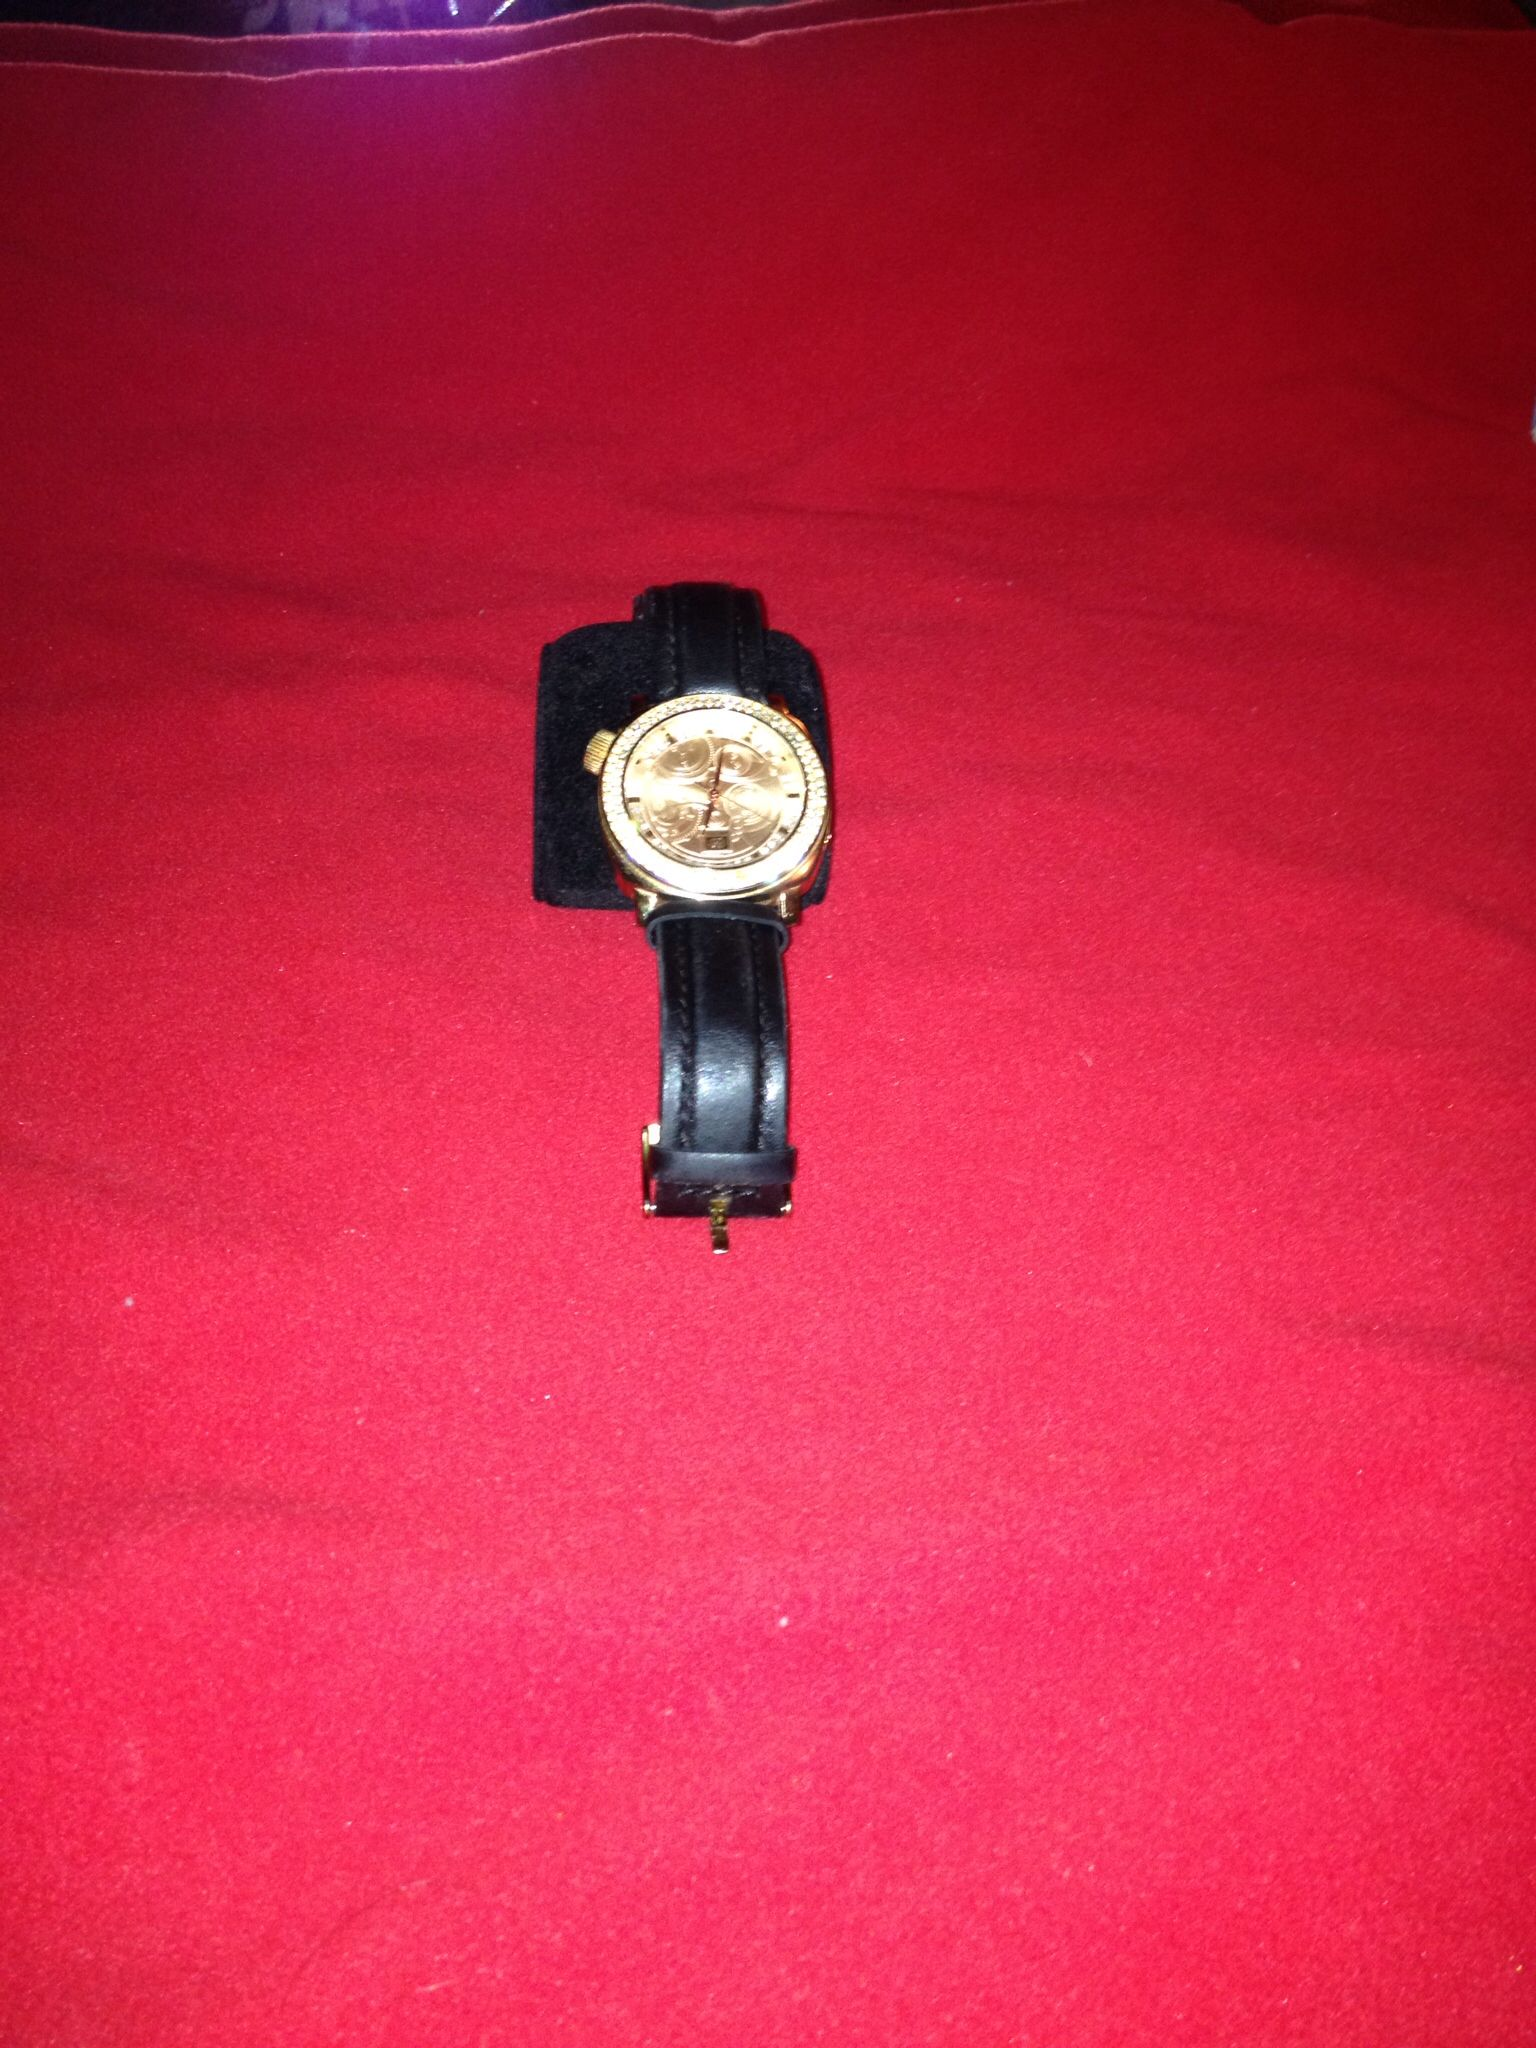 My Marc ecko watches